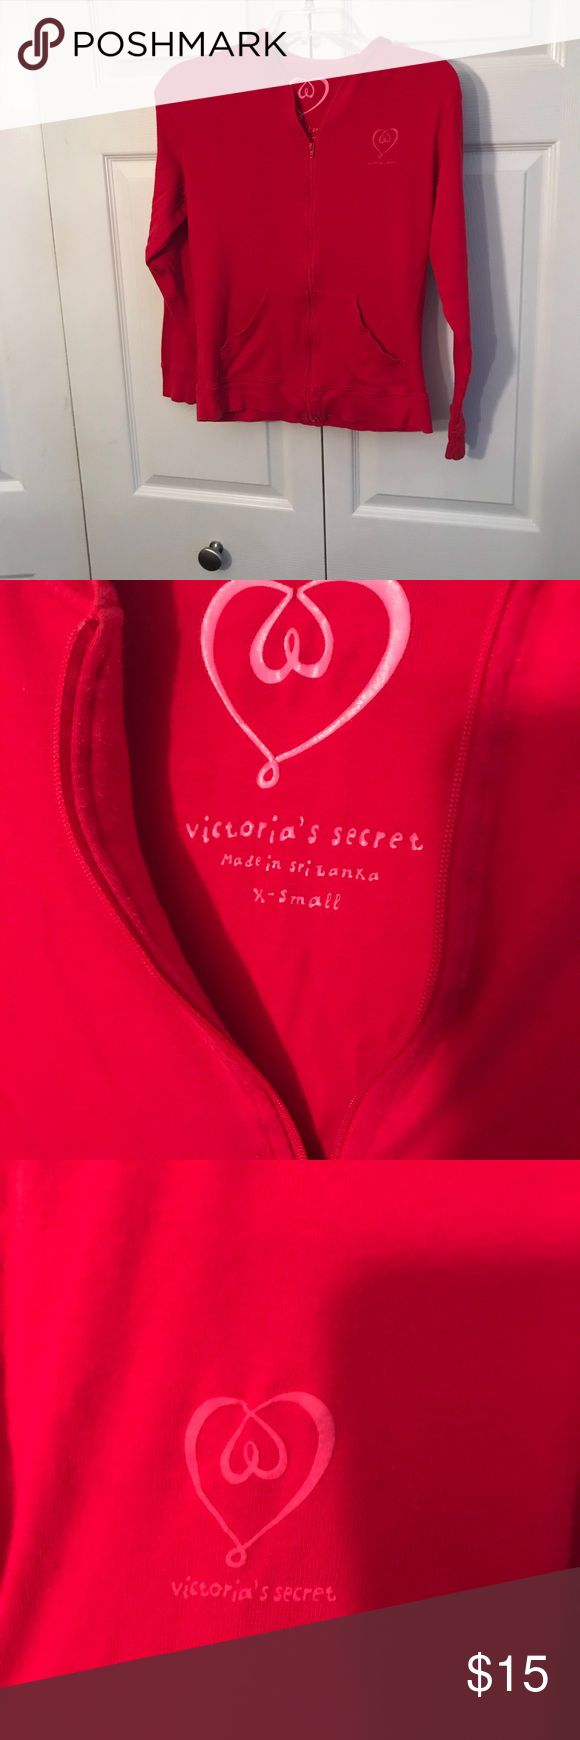 ❤️Victoria's Secret red zip up hoodies size XS❣️ Red Victoria's Secret Women's size xtra small. In excellent condition and light and comfortable. Victoria's Secret Tops Sweatshirts & Hoodies